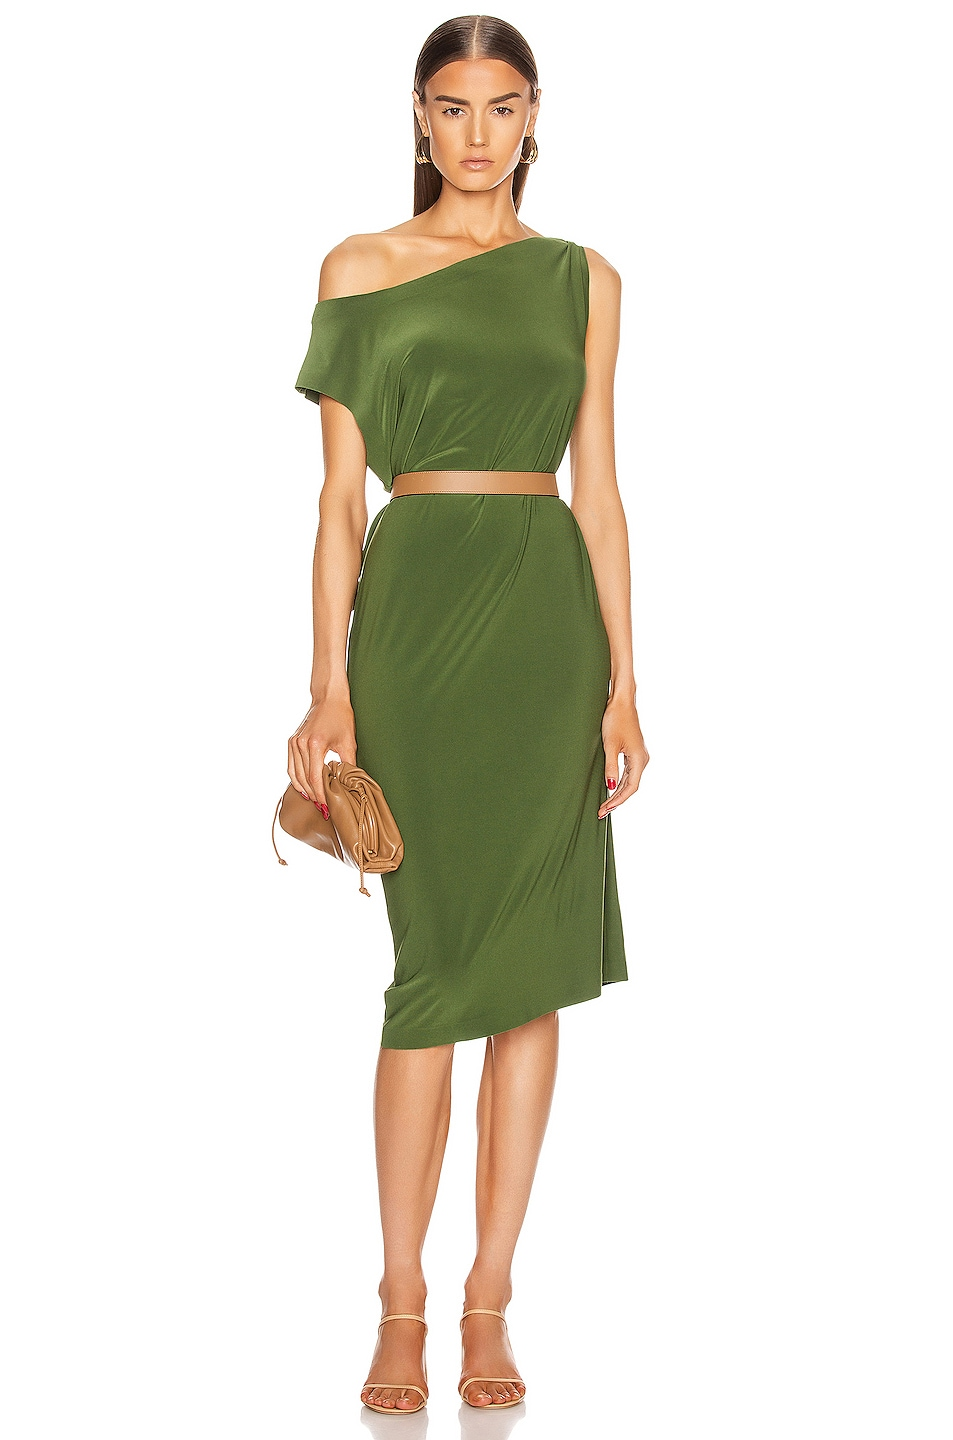 Image 1 of Norma Kamali for FWRD Drop Shoulder Dress in Oliva